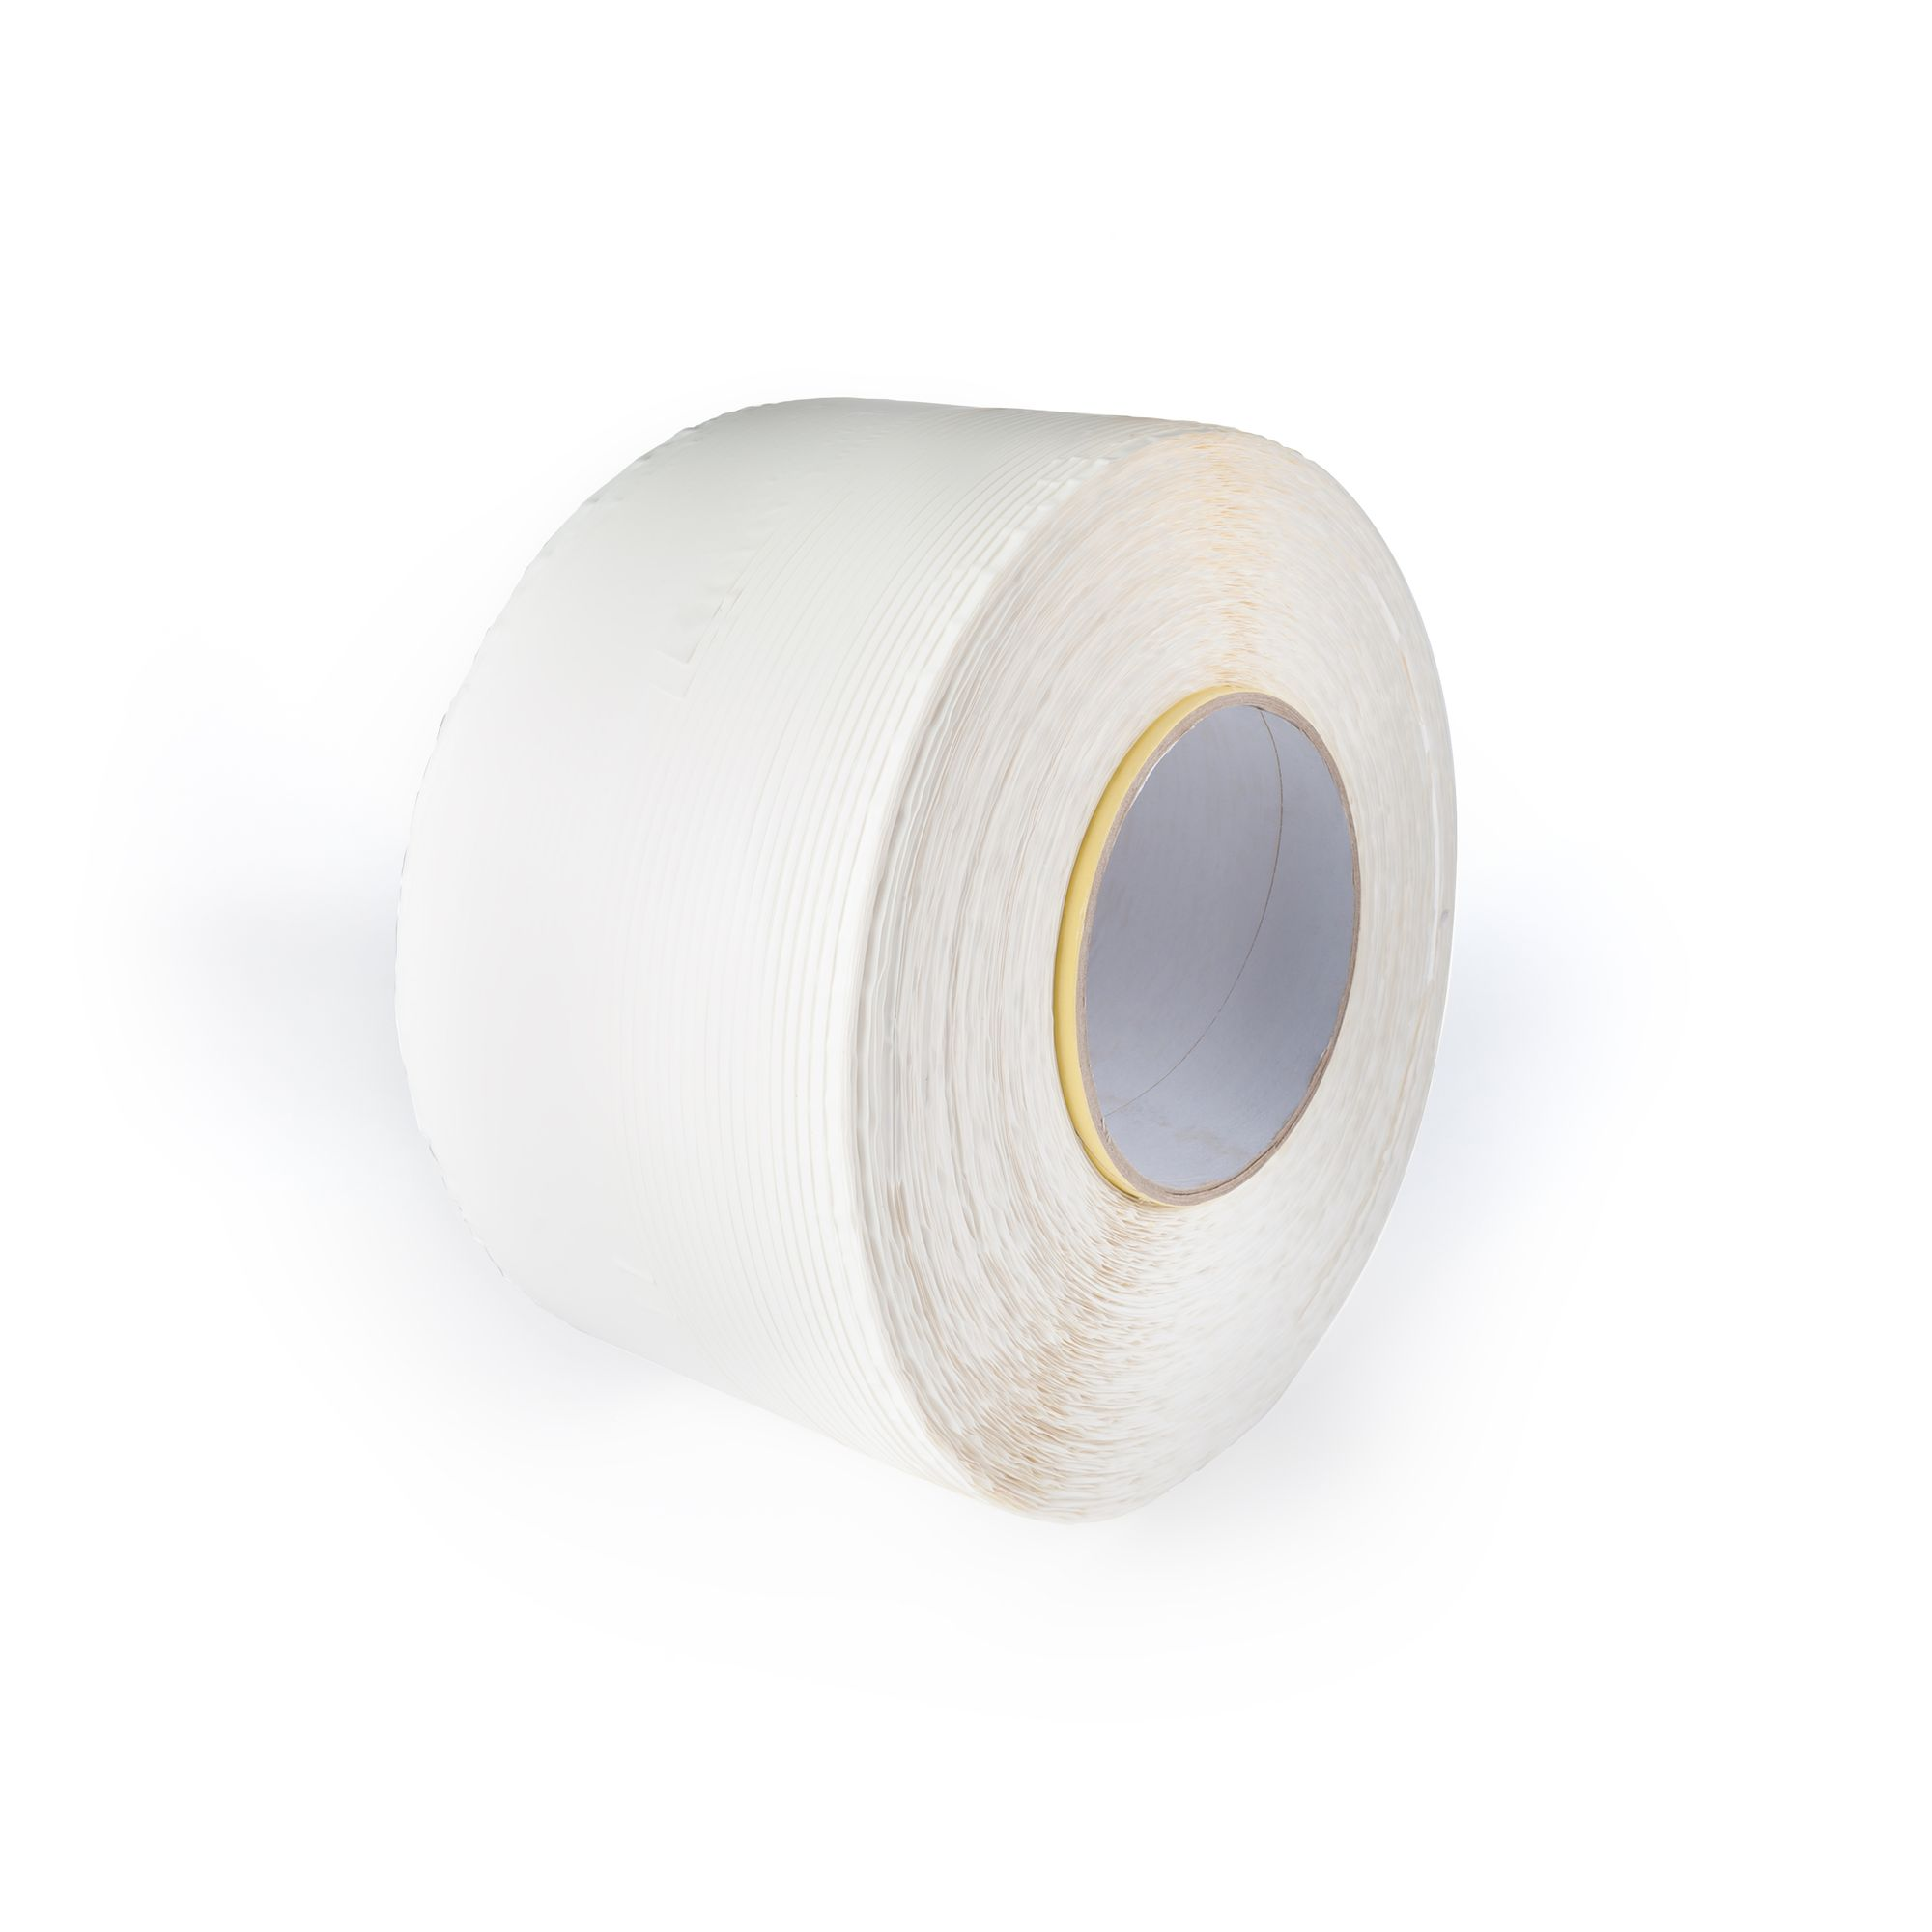 Permanent tape closures - Hotmelt adhesive - Tamper evident - Hotmelt adhesive - The security tape company - Reseleable tape Closures - Film transfer - Silicone release liner - Permanent tape closures - http://www.kbedich.com - Cintas de cierre permanente